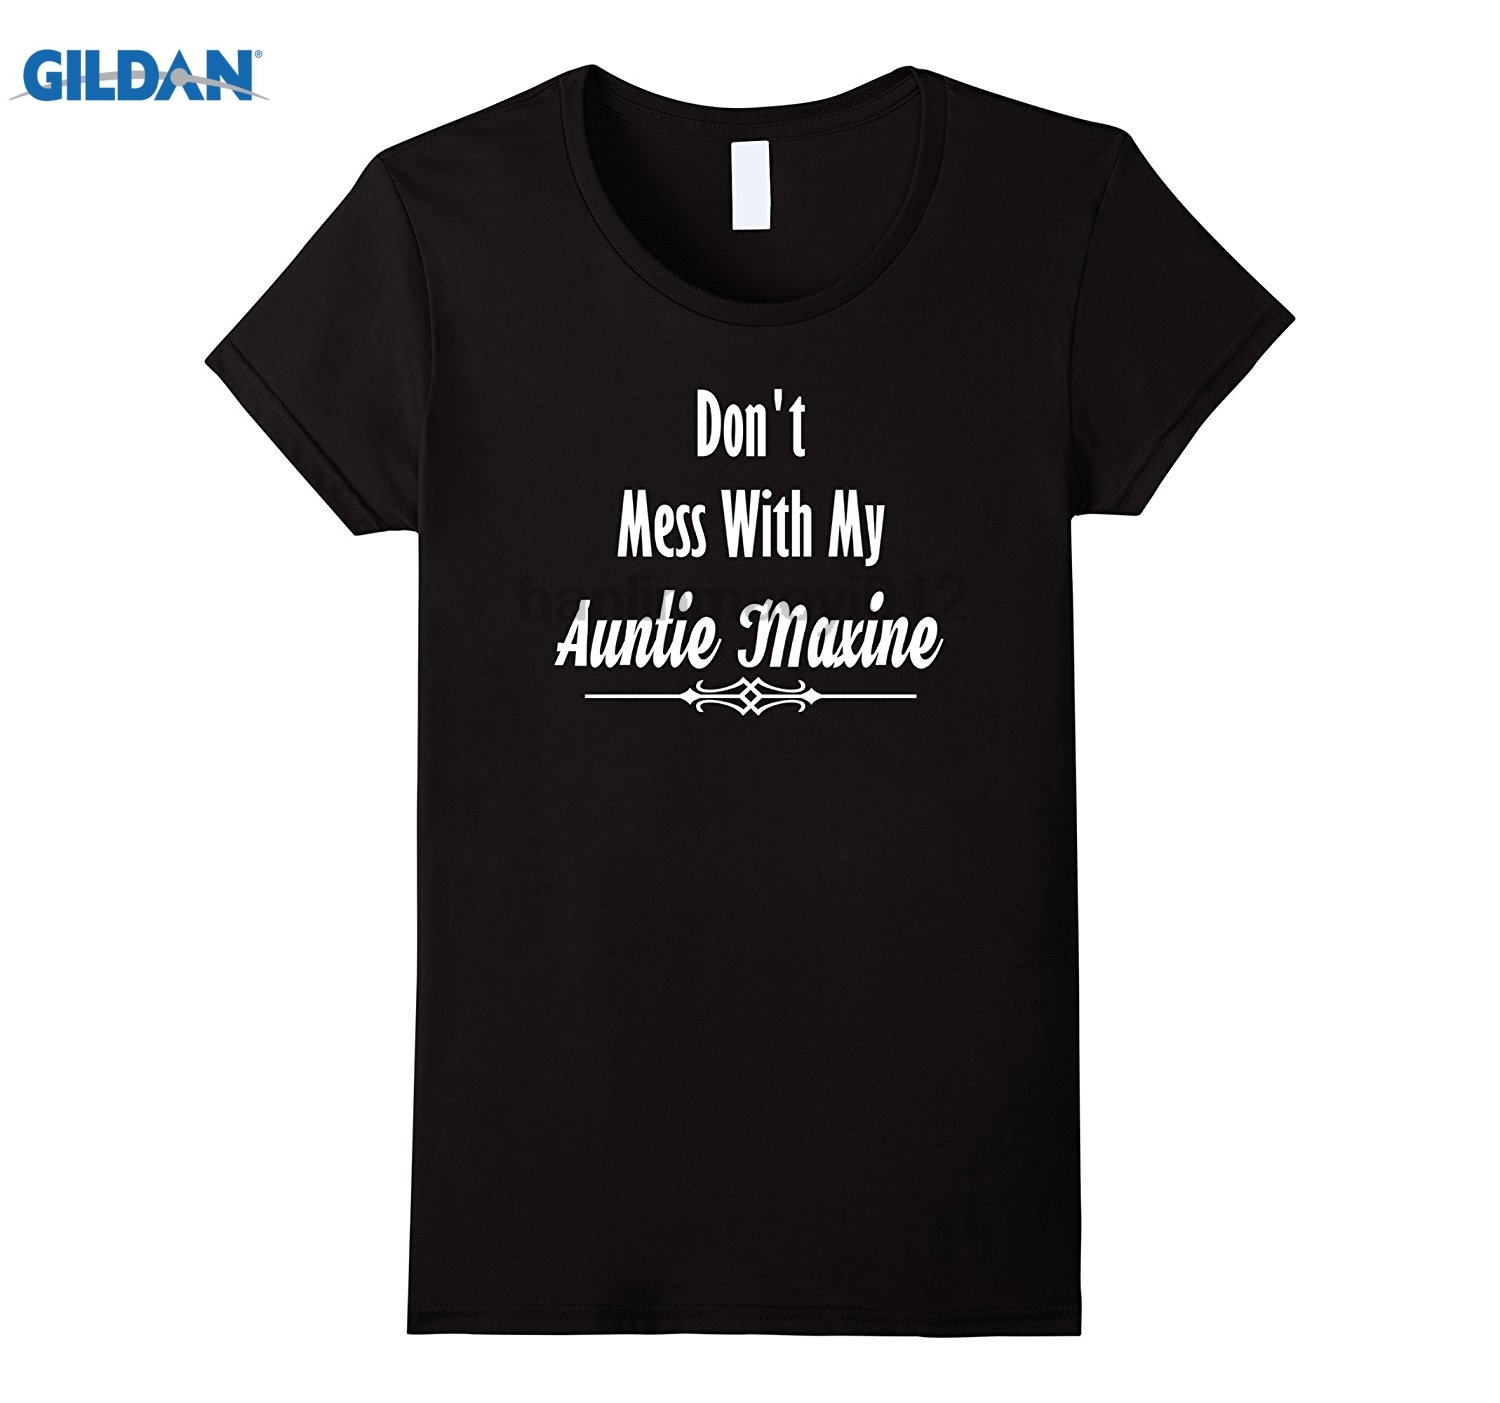 GILDAN Dont Mess With My Auntie Maxine Protest T-Shirt 2018 Summer New Mens T-shirt Interesting Slim T-Shirt